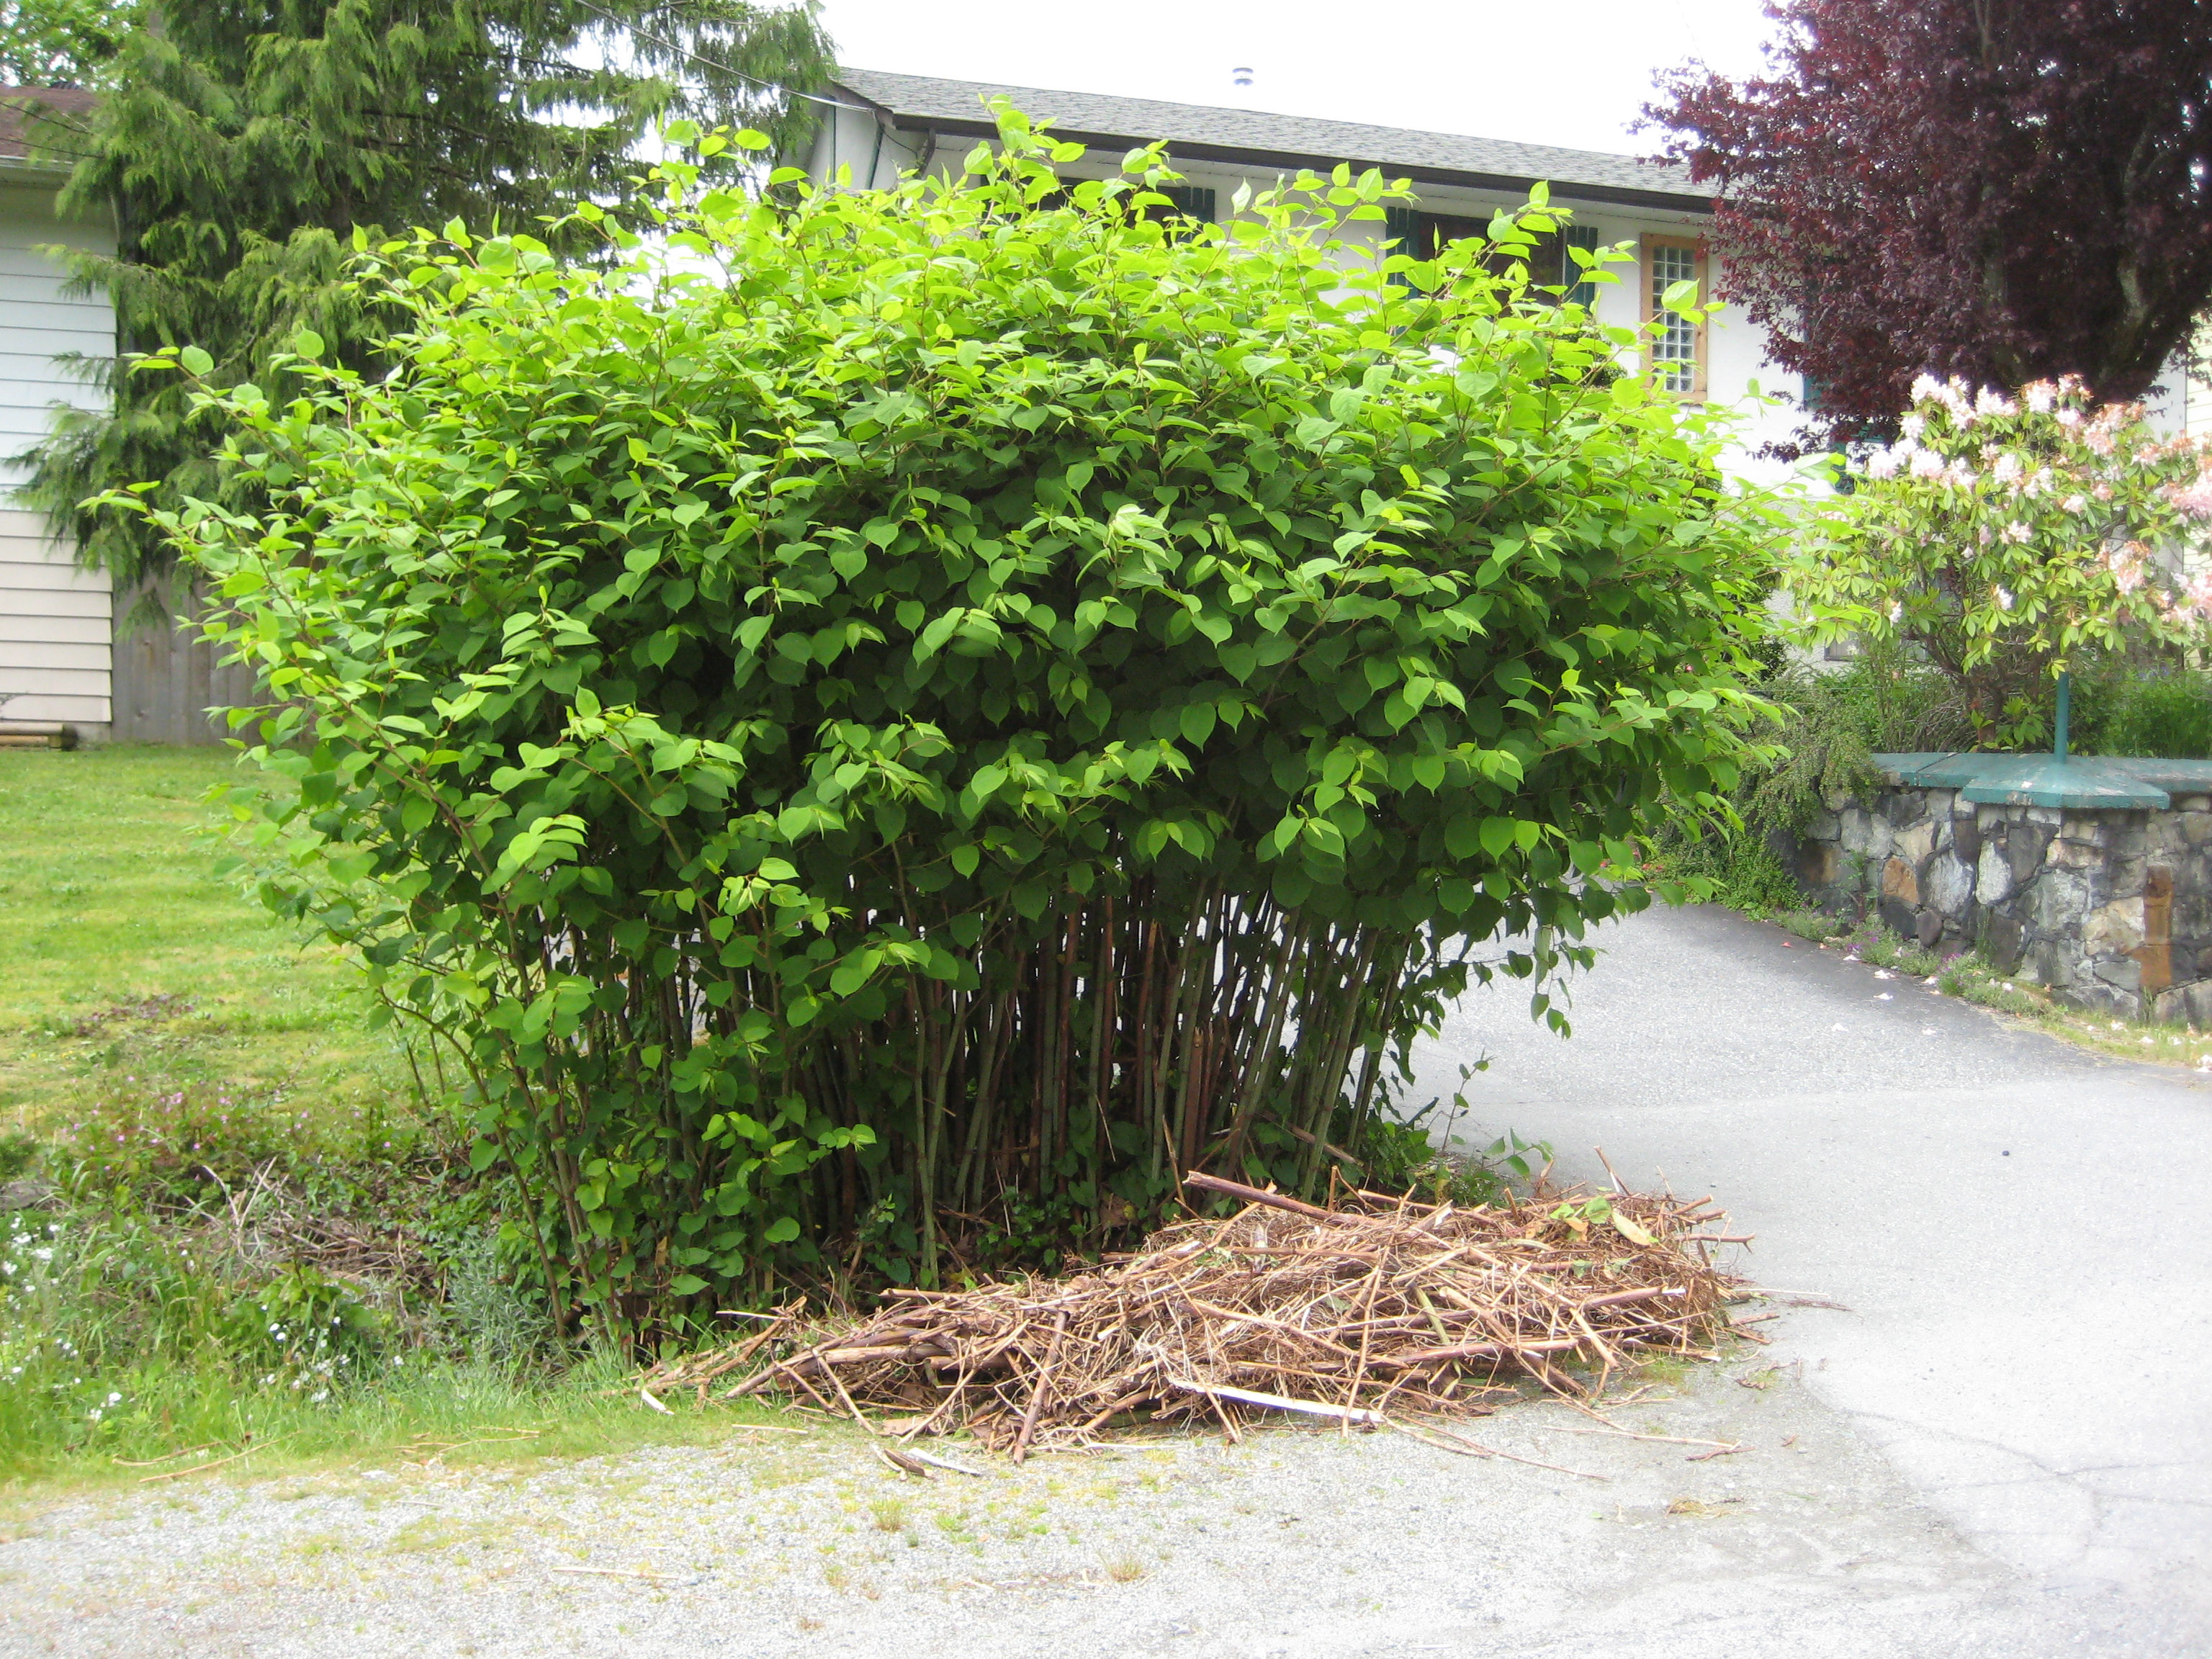 Japanese Knotweed (Fallopia japonica) in Squamish